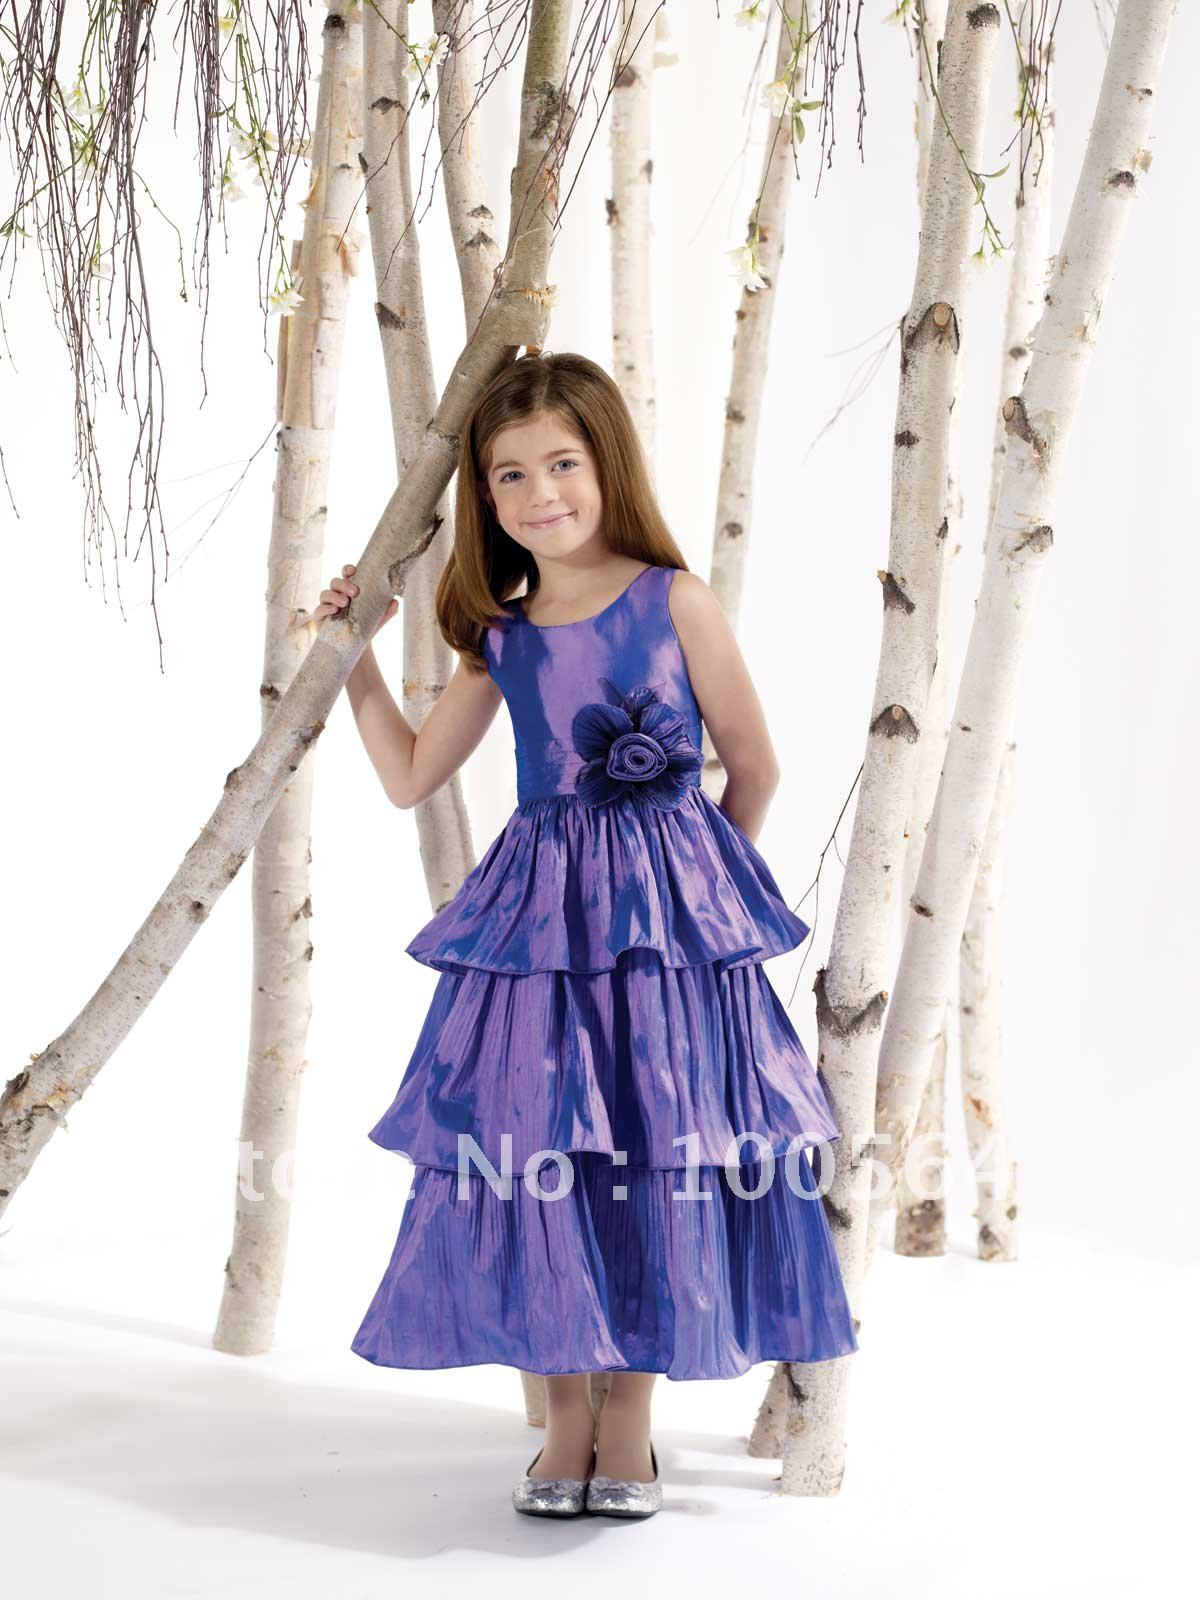 Colorful Young Girls Party Dresses Ensign - Wedding Dress Ideas ...